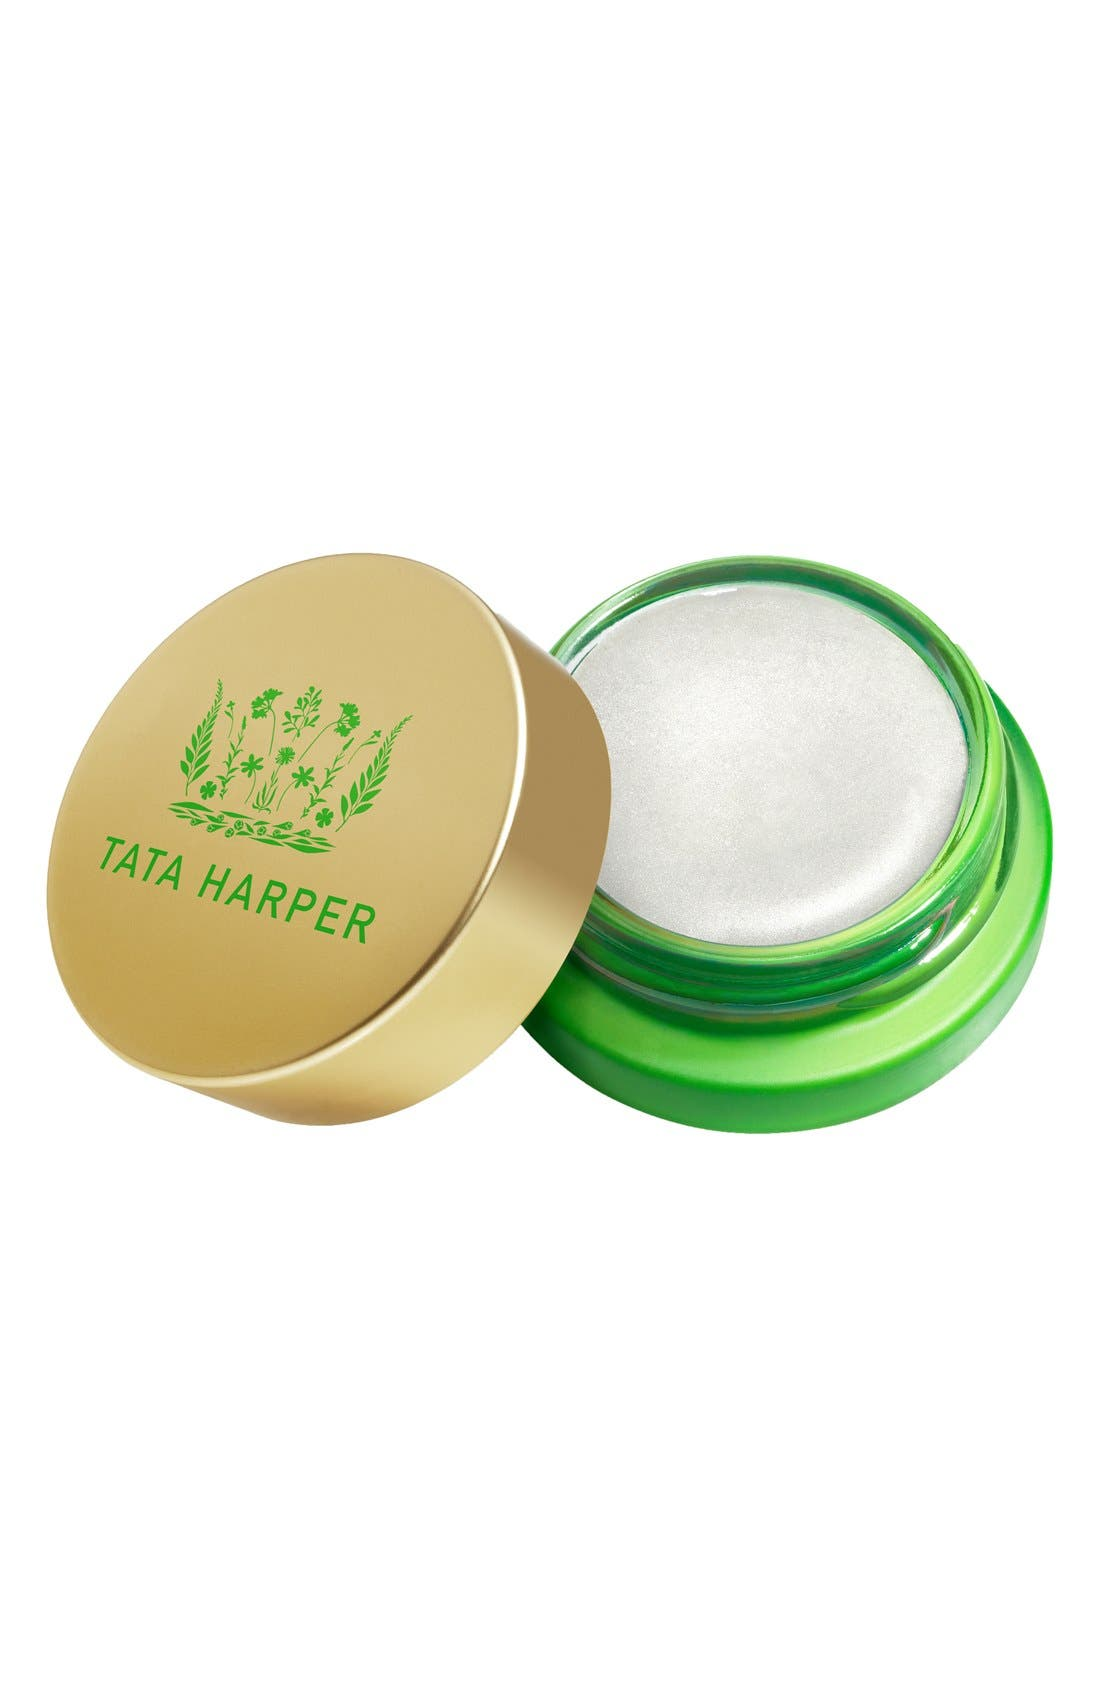 Tata Harper Highlighter